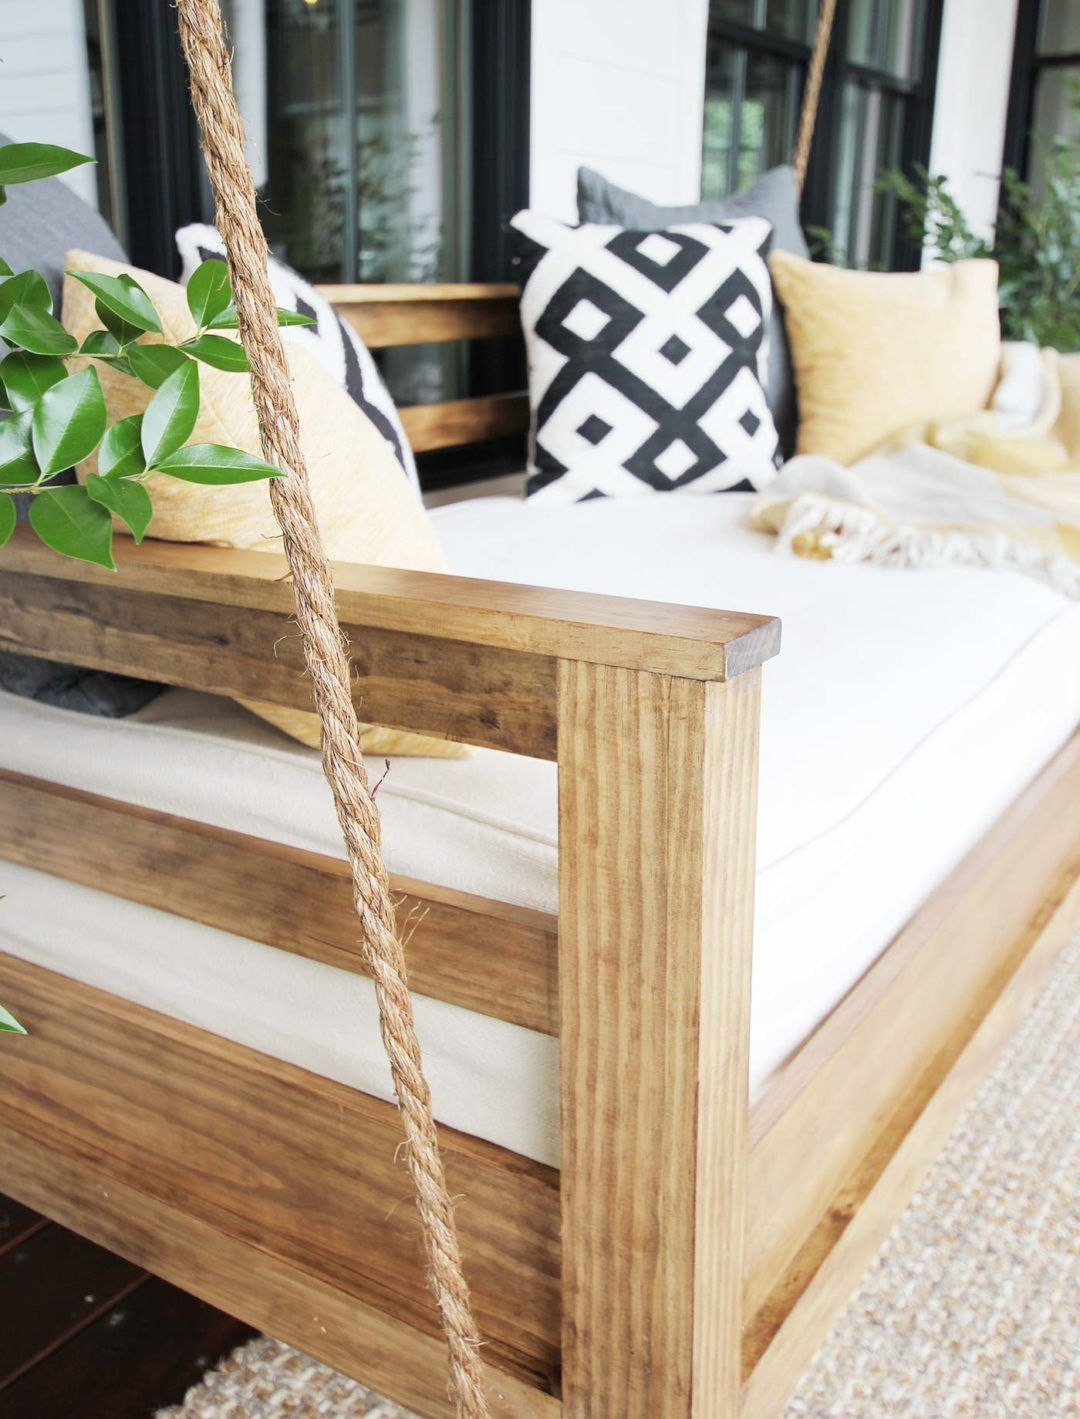 Hanging Daybed Rope Porch Swings Throughout Fashionable How To Build A Porch Swing Bed – Plank And Pillow (View 16 of 30)